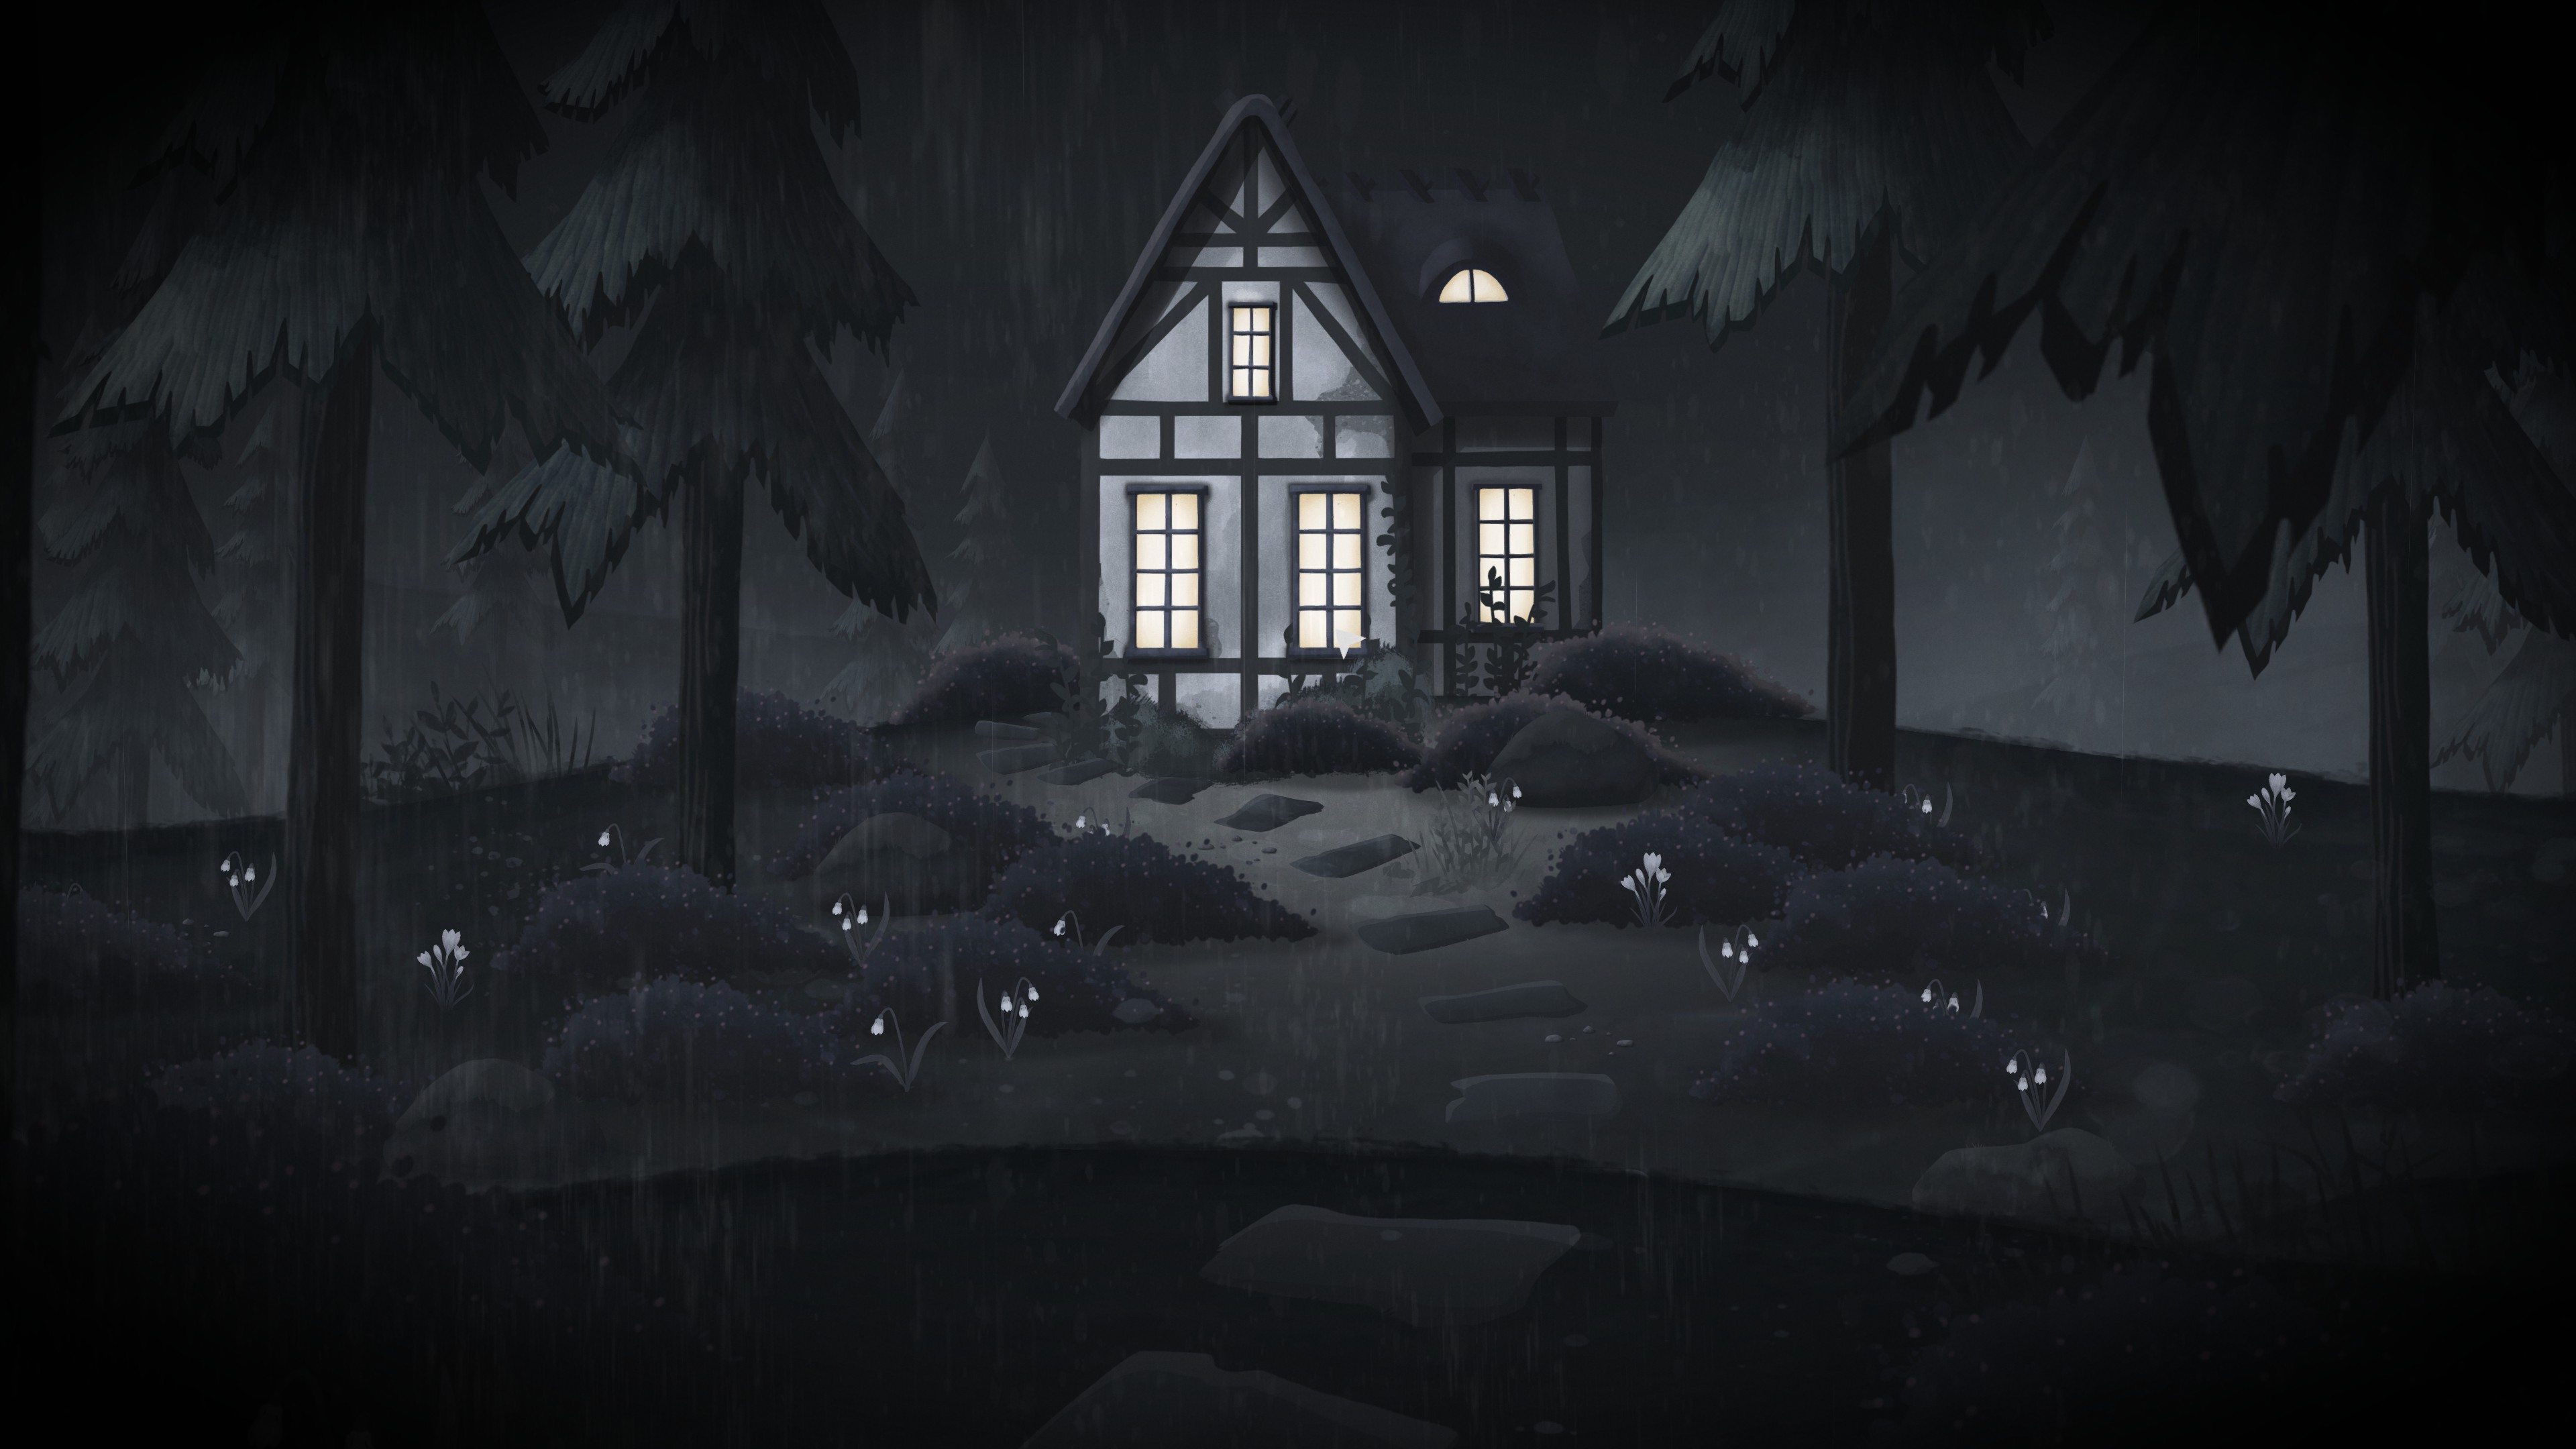 Tick Tock  A Tale for Two. A small house lit up at night